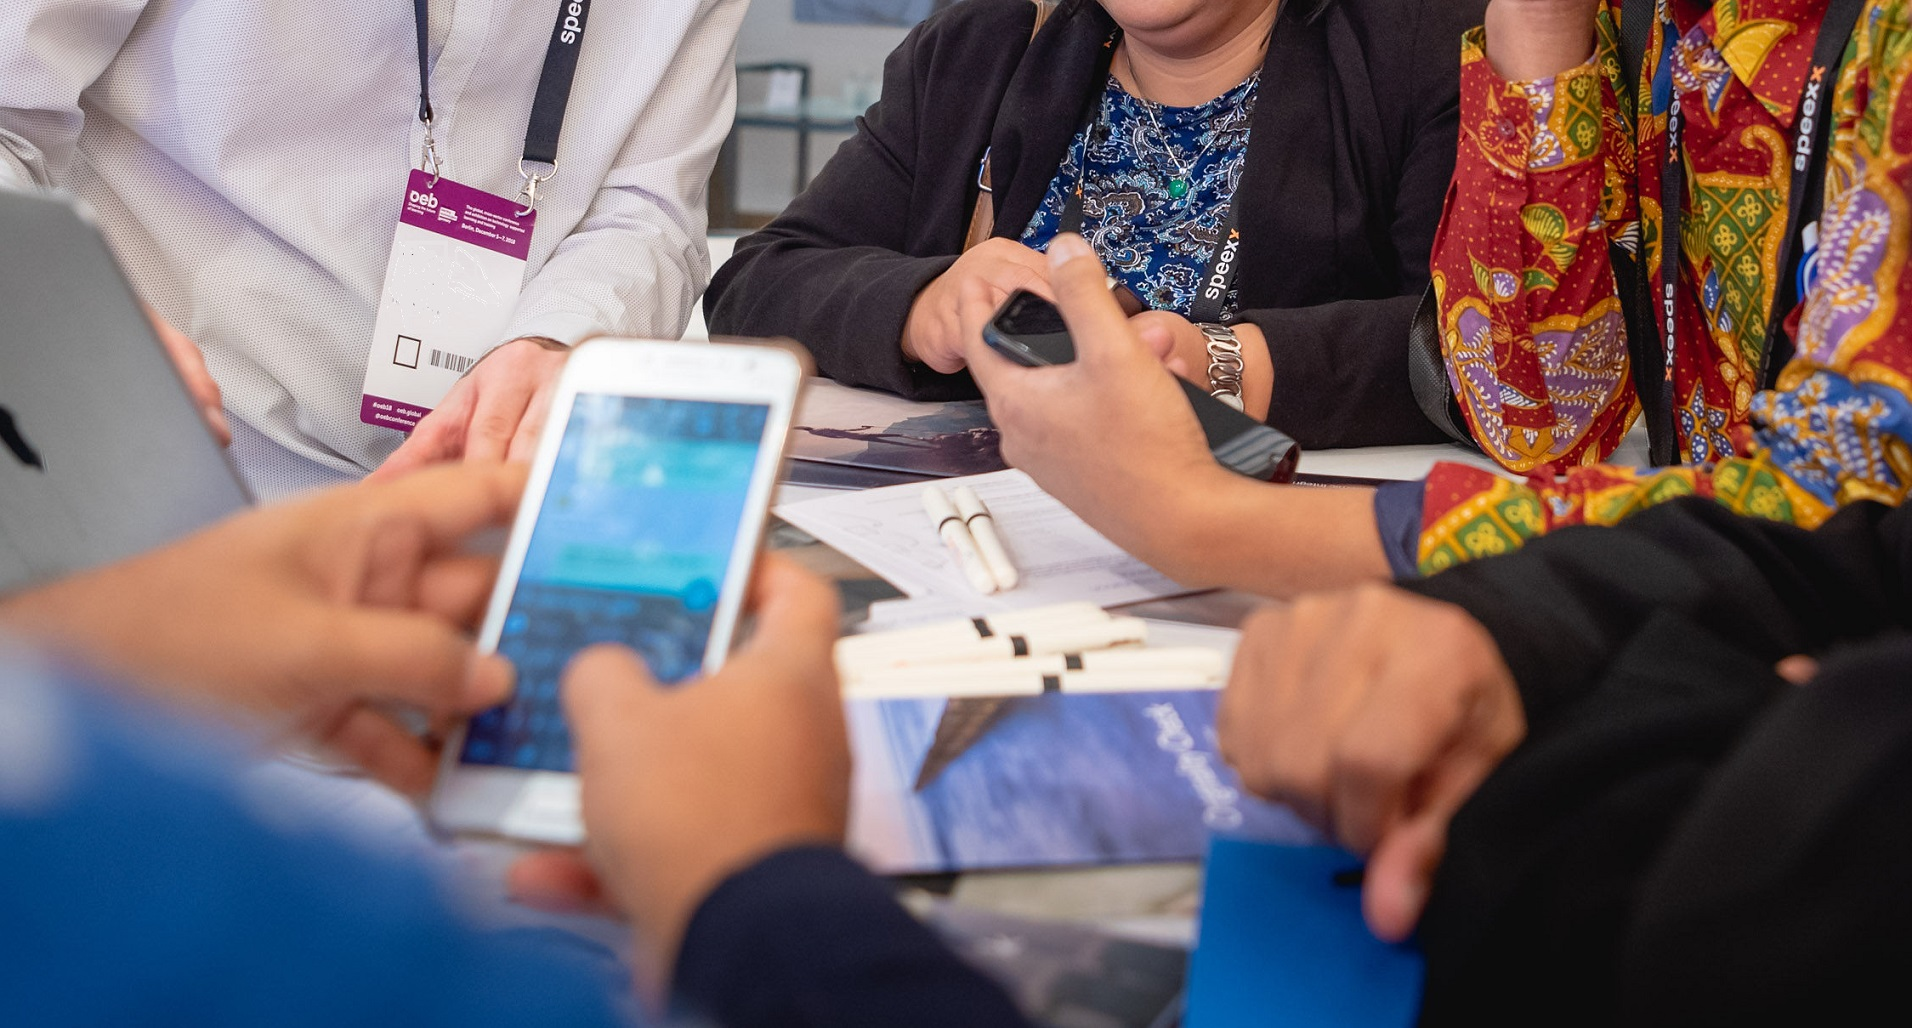 Shaping the future of learning | OEB